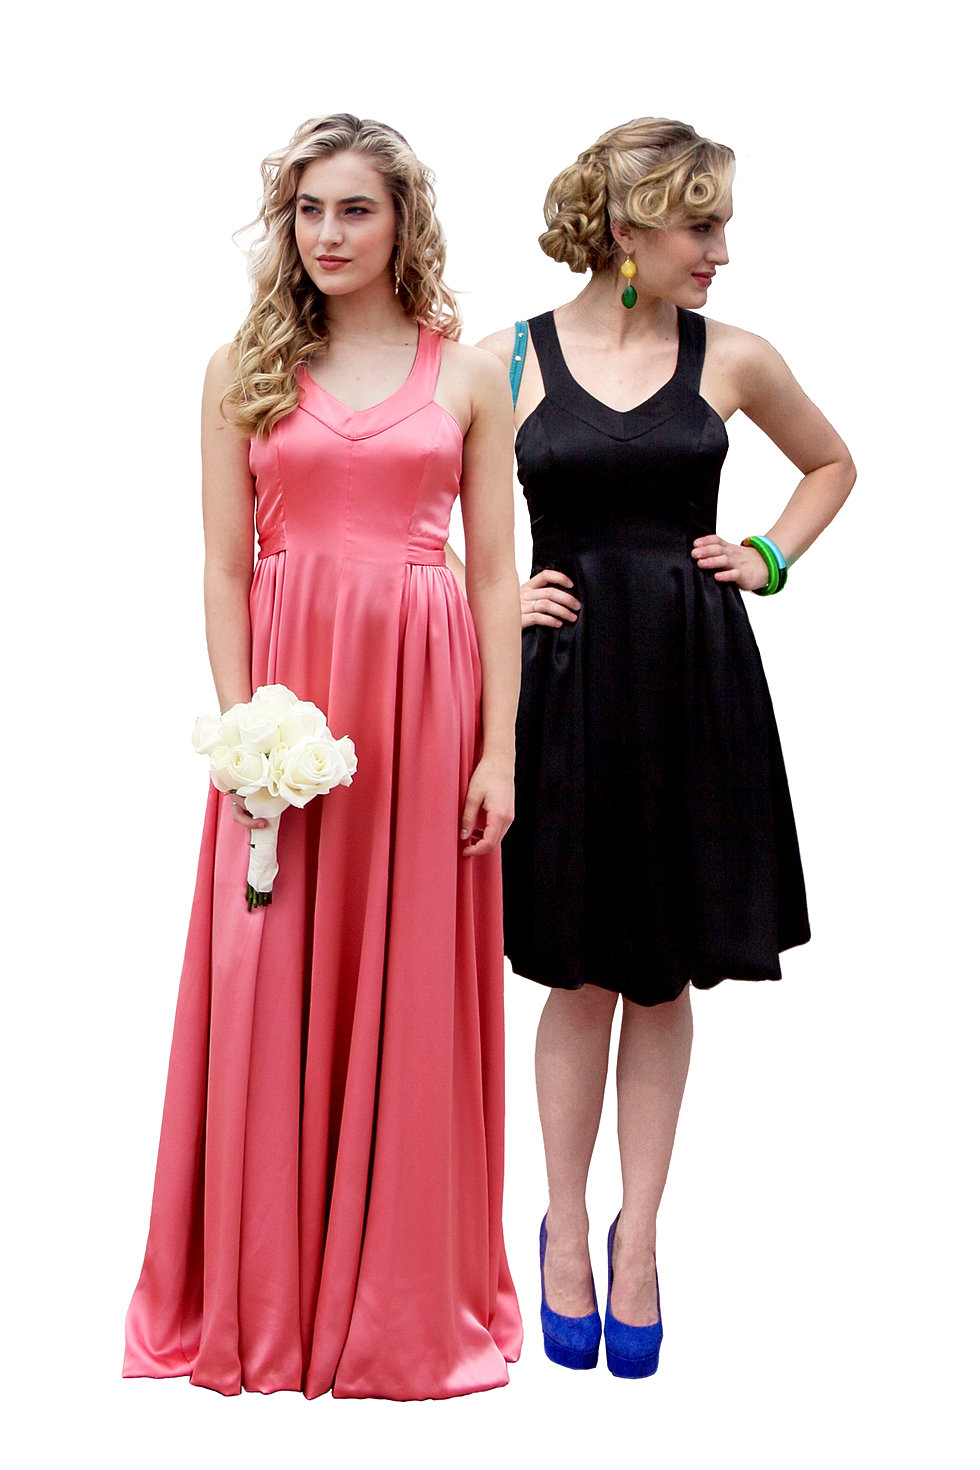 Reversible bridesmaid dresses 28 images and reversible reversible bridesmaid dresses durga kali reversible dresses bridesmaid dresses you can ombrellifo Images